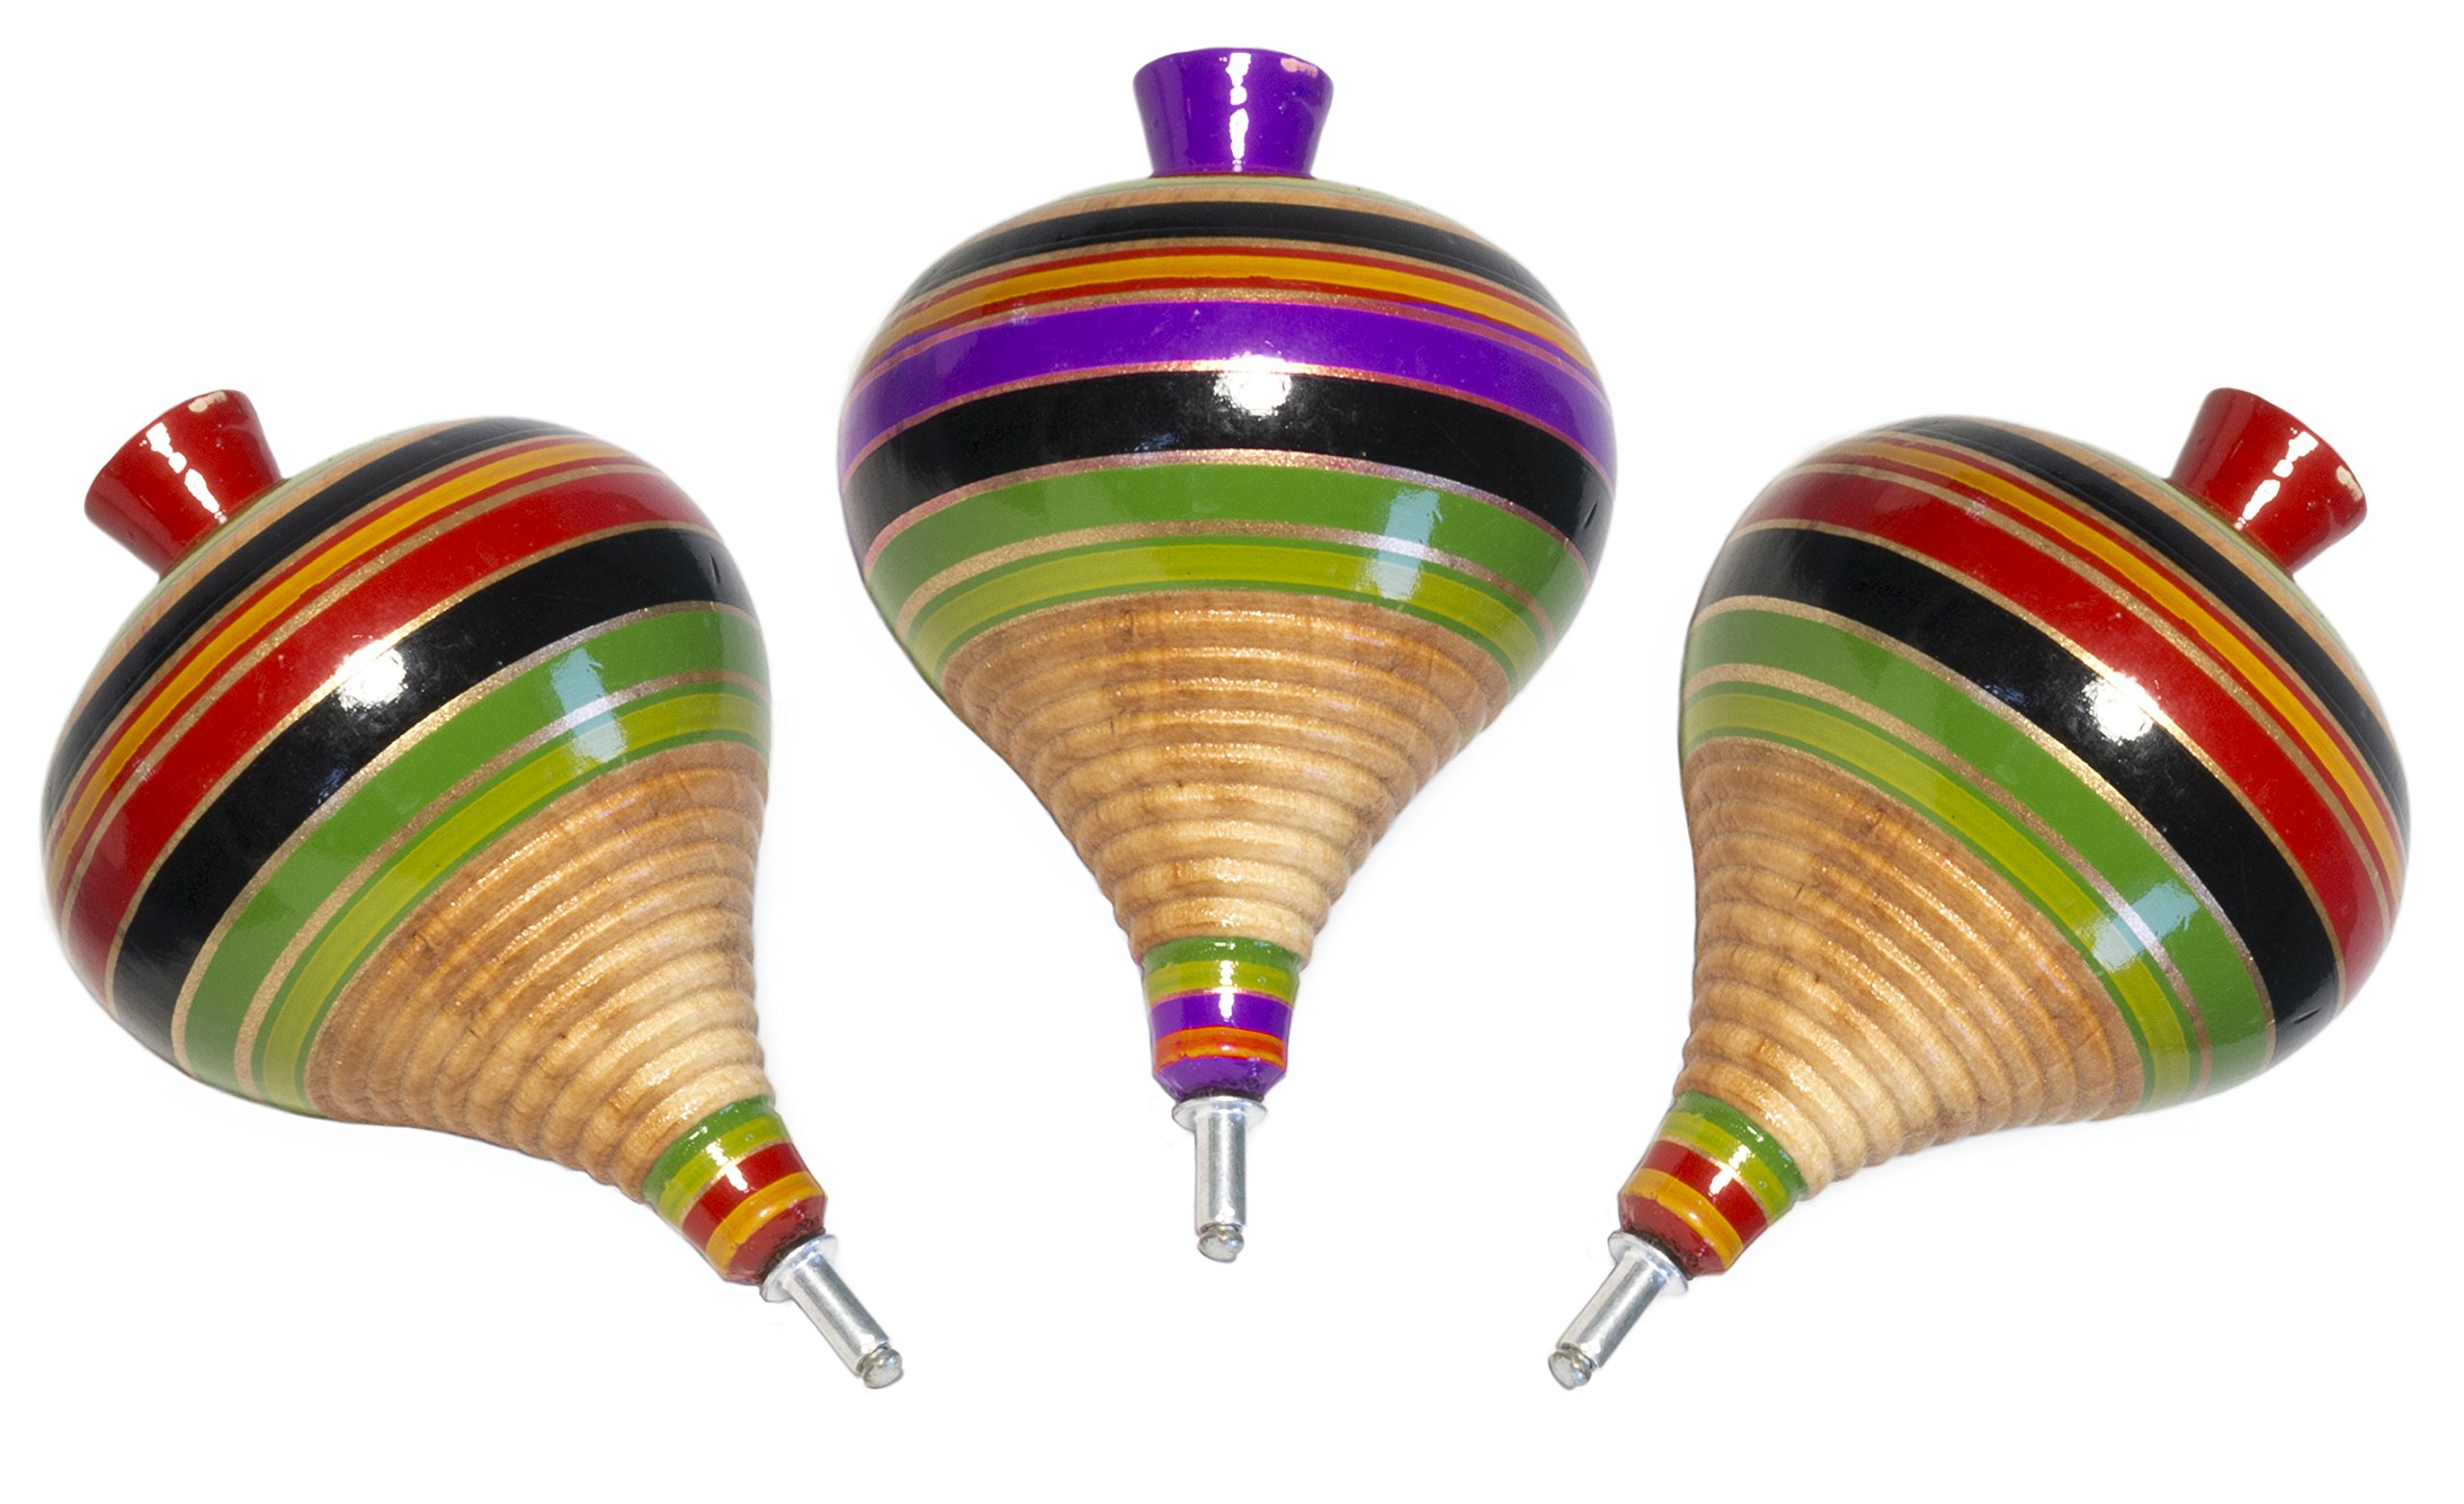 (3 Pack) Classic Wooden Spinning Tops Trompo Premium Quality Finish Artisan Hand Made/ Trompo de Madera Mexicano - The Best Quality Finish Handcrafted Tops - Trompos de Madera (Assorted Colors)